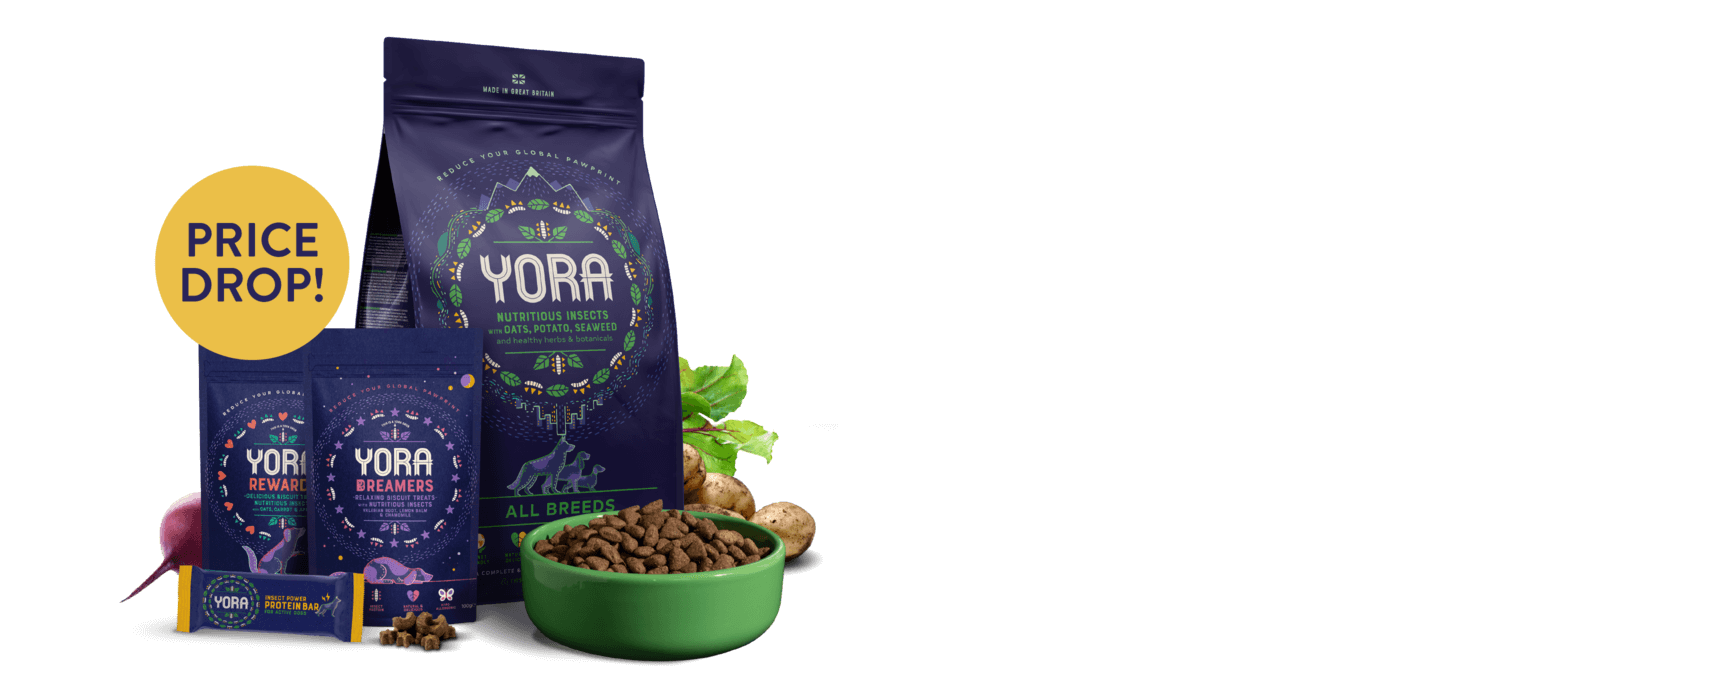 The world's most sustainable dog food is now much more affordable. Up to 20% OFF forever. Price Drop! Find out why and shop